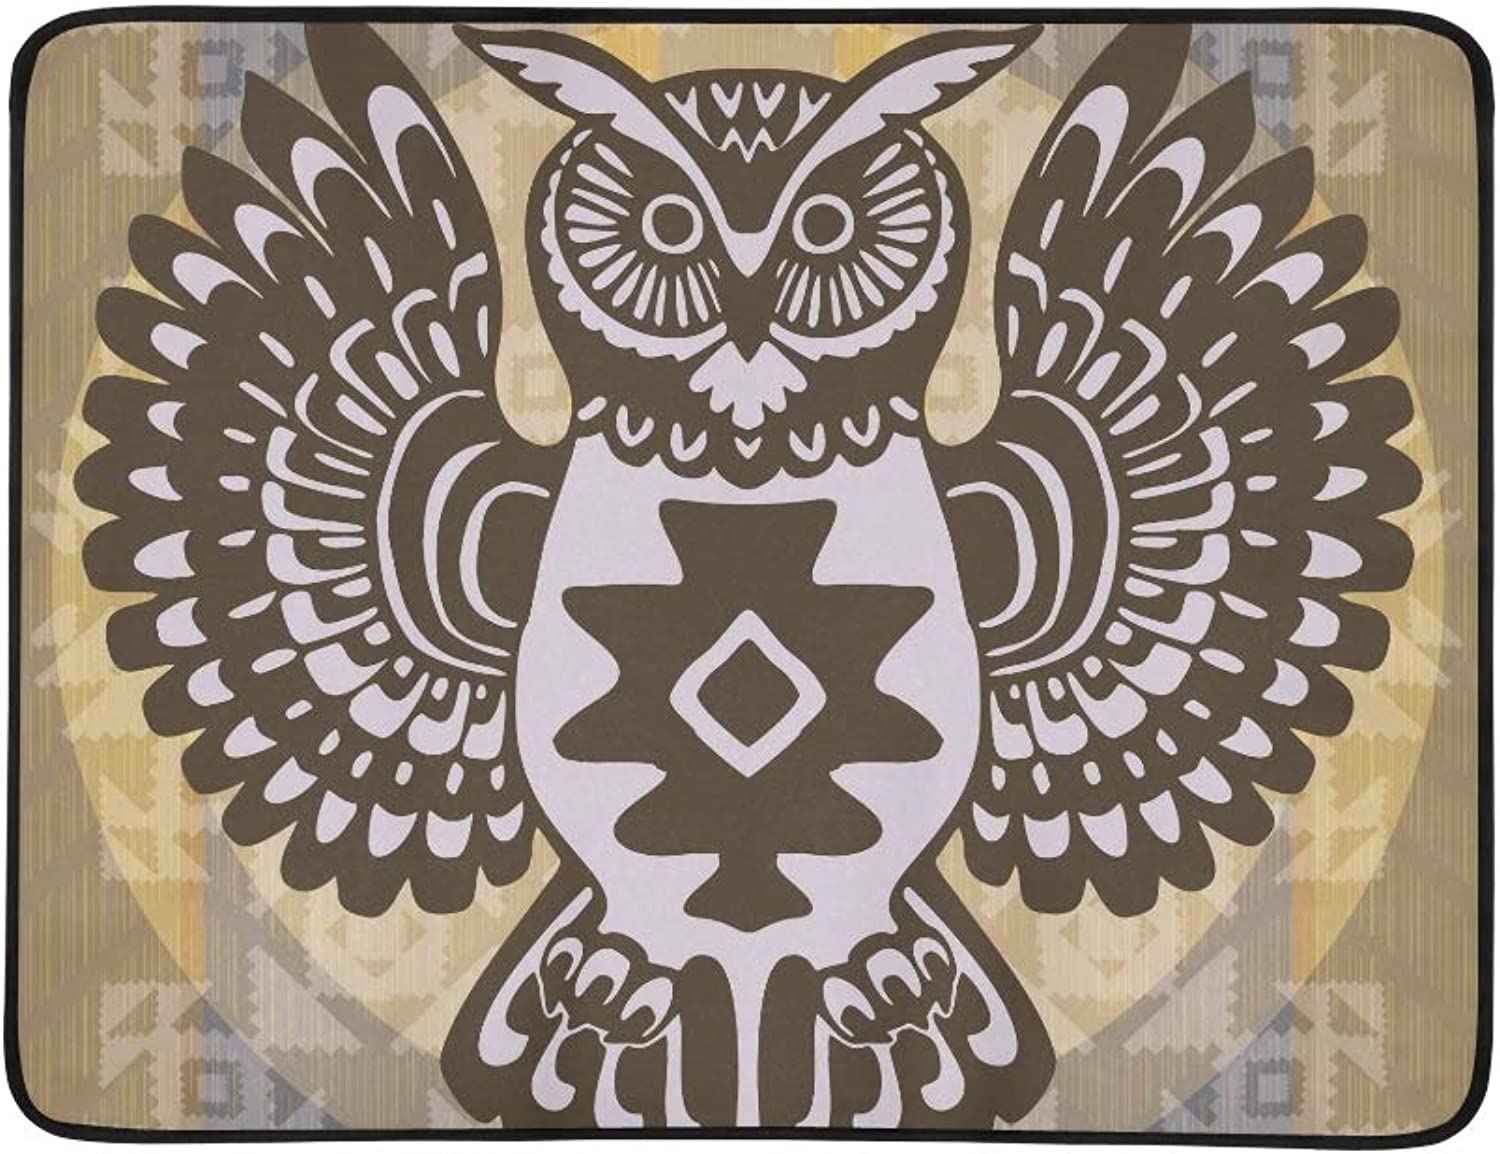 A Decorative Owl at an Ornamental Origin Pattern Portable and Foldable Blanket Mat 60x78 Inch Handy Mat for Camping Picnic Beach Indoor Outdoor Travel